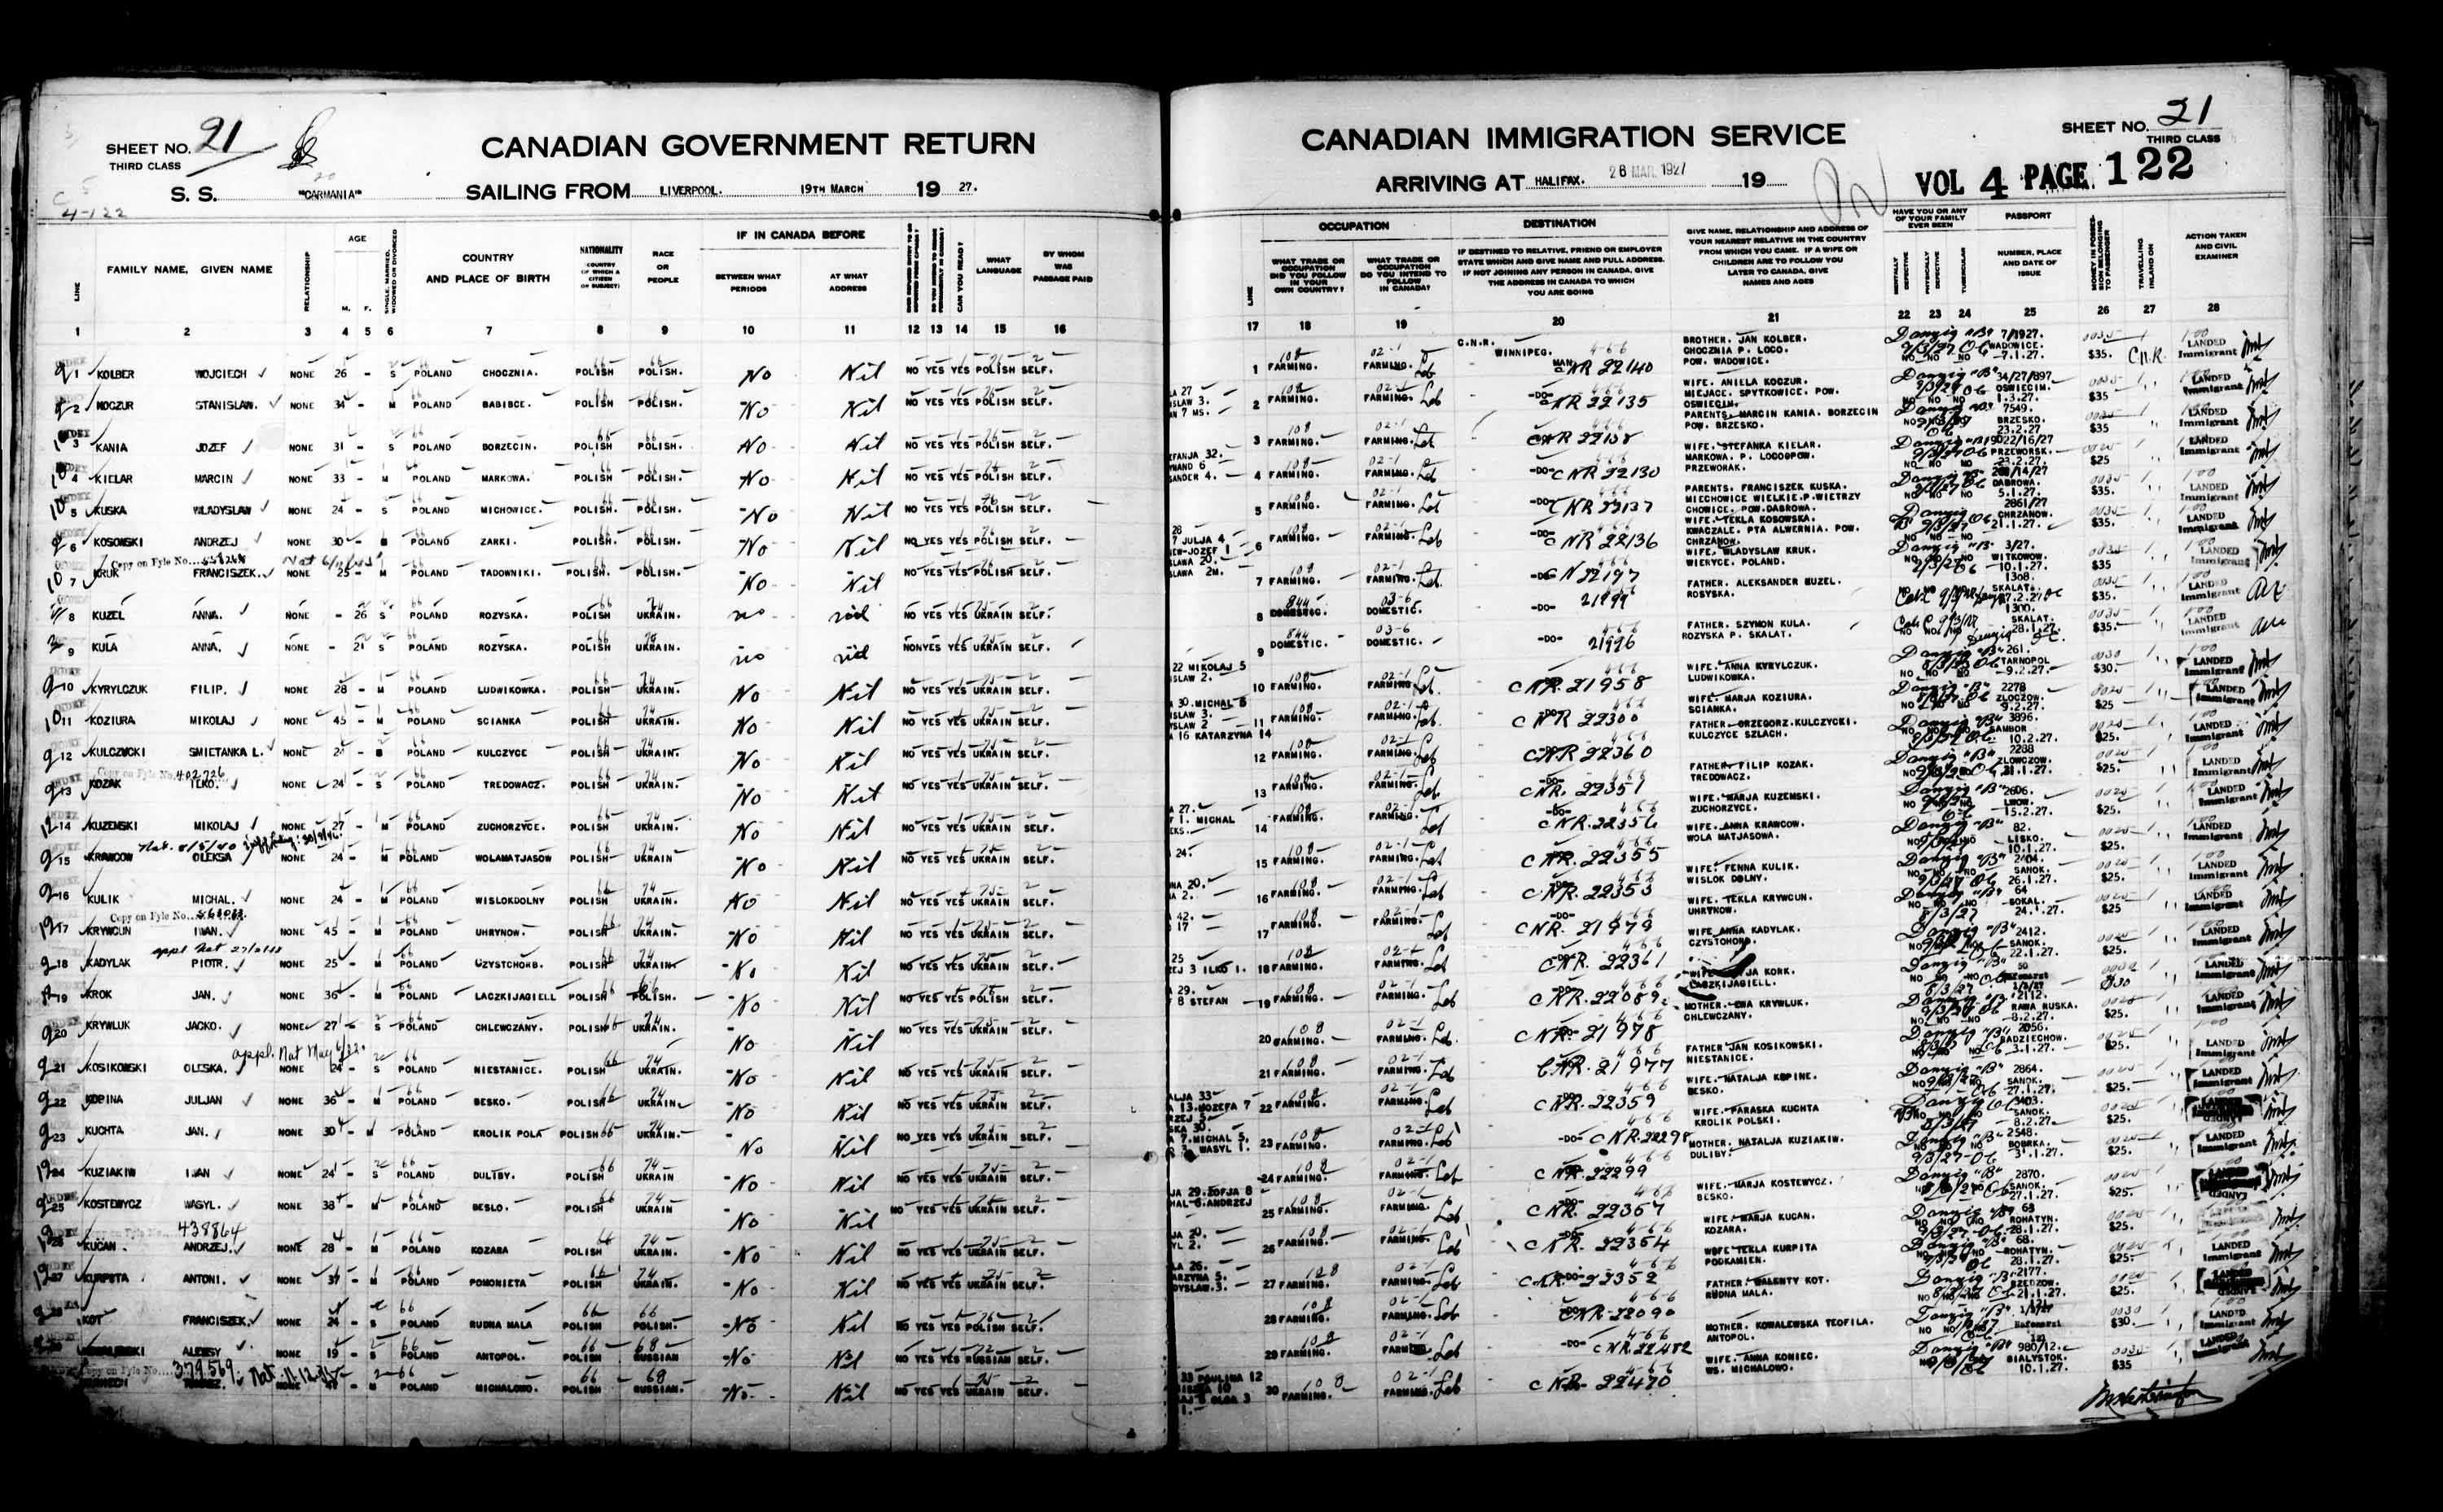 Title: Passenger Lists: Halifax (1925-1935) - Mikan Number: 134853 - Microform: t-14809